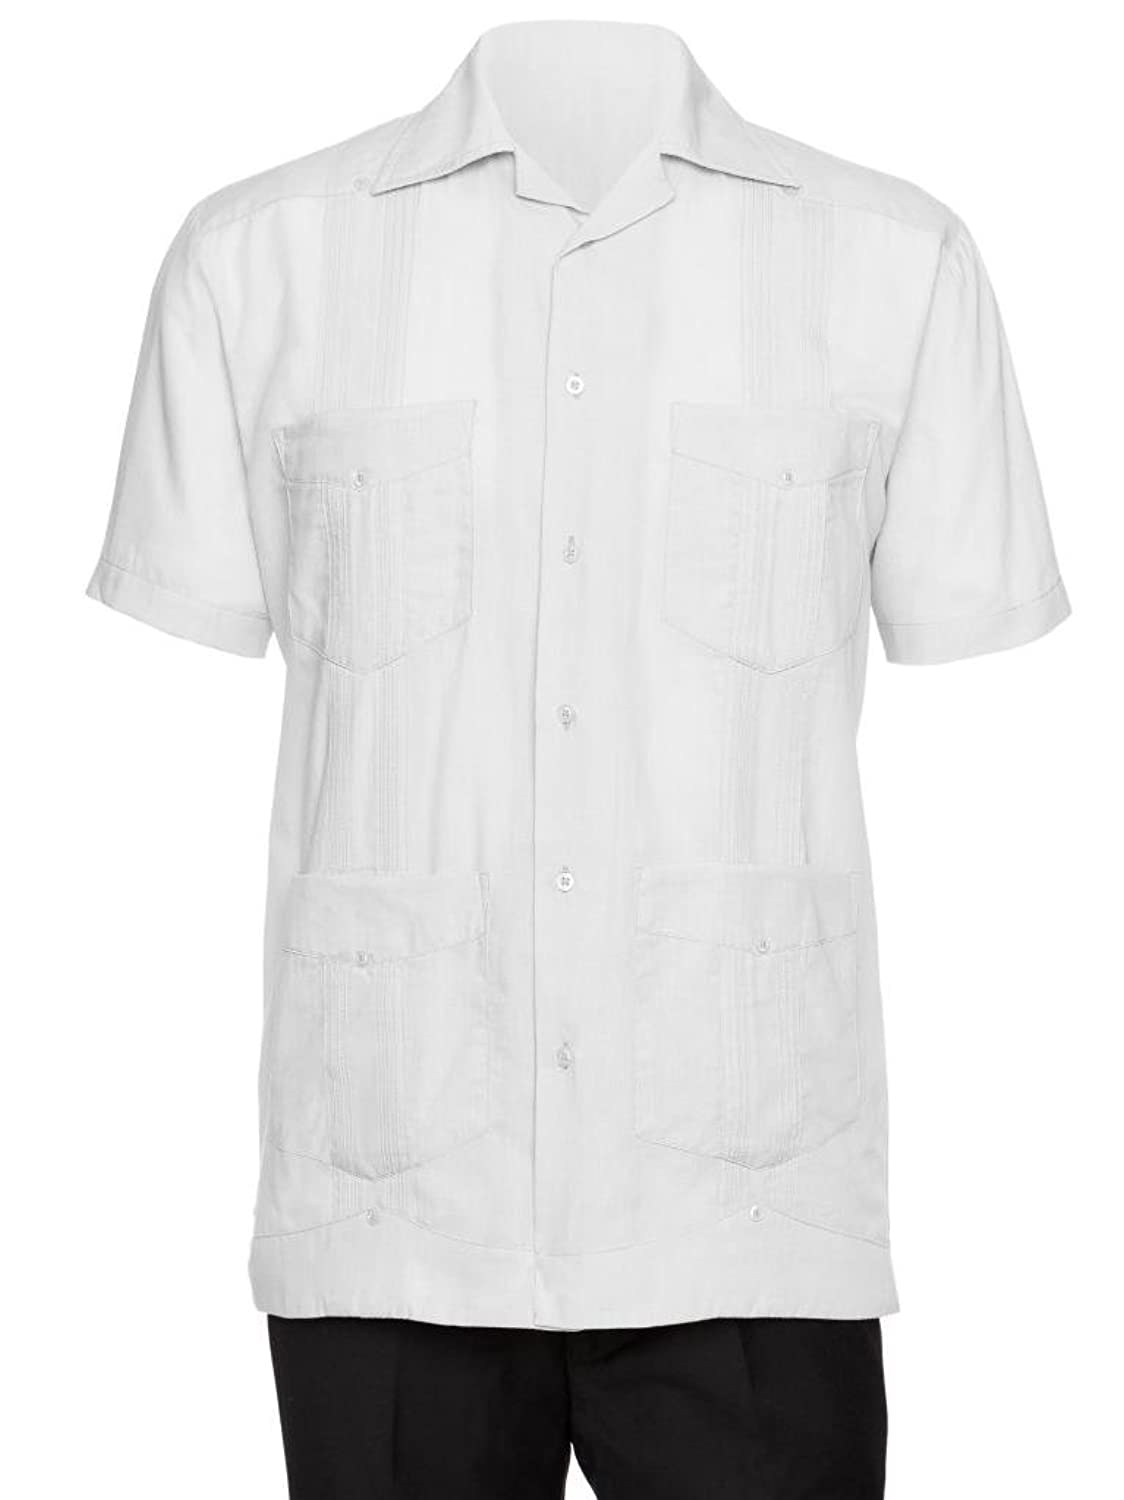 1930s Style Mens Shirts  Mens Short Sleeve Cotton blend Guayabera Shirt $26.99 AT vintagedancer.com